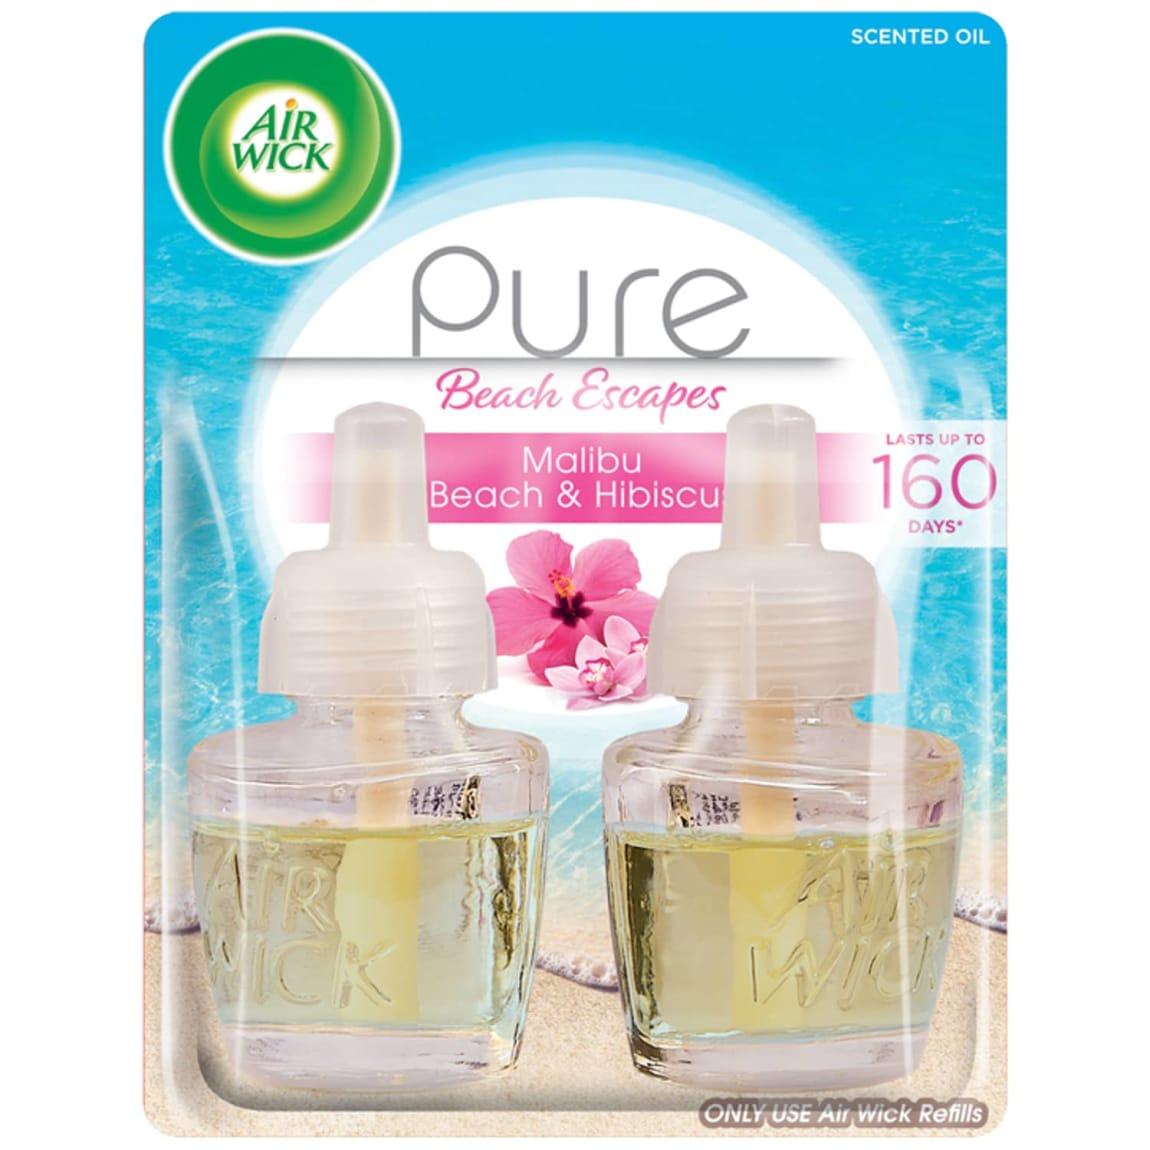 Air Wick Pure Beach Escapes Oil Refill 2pk - Malibu